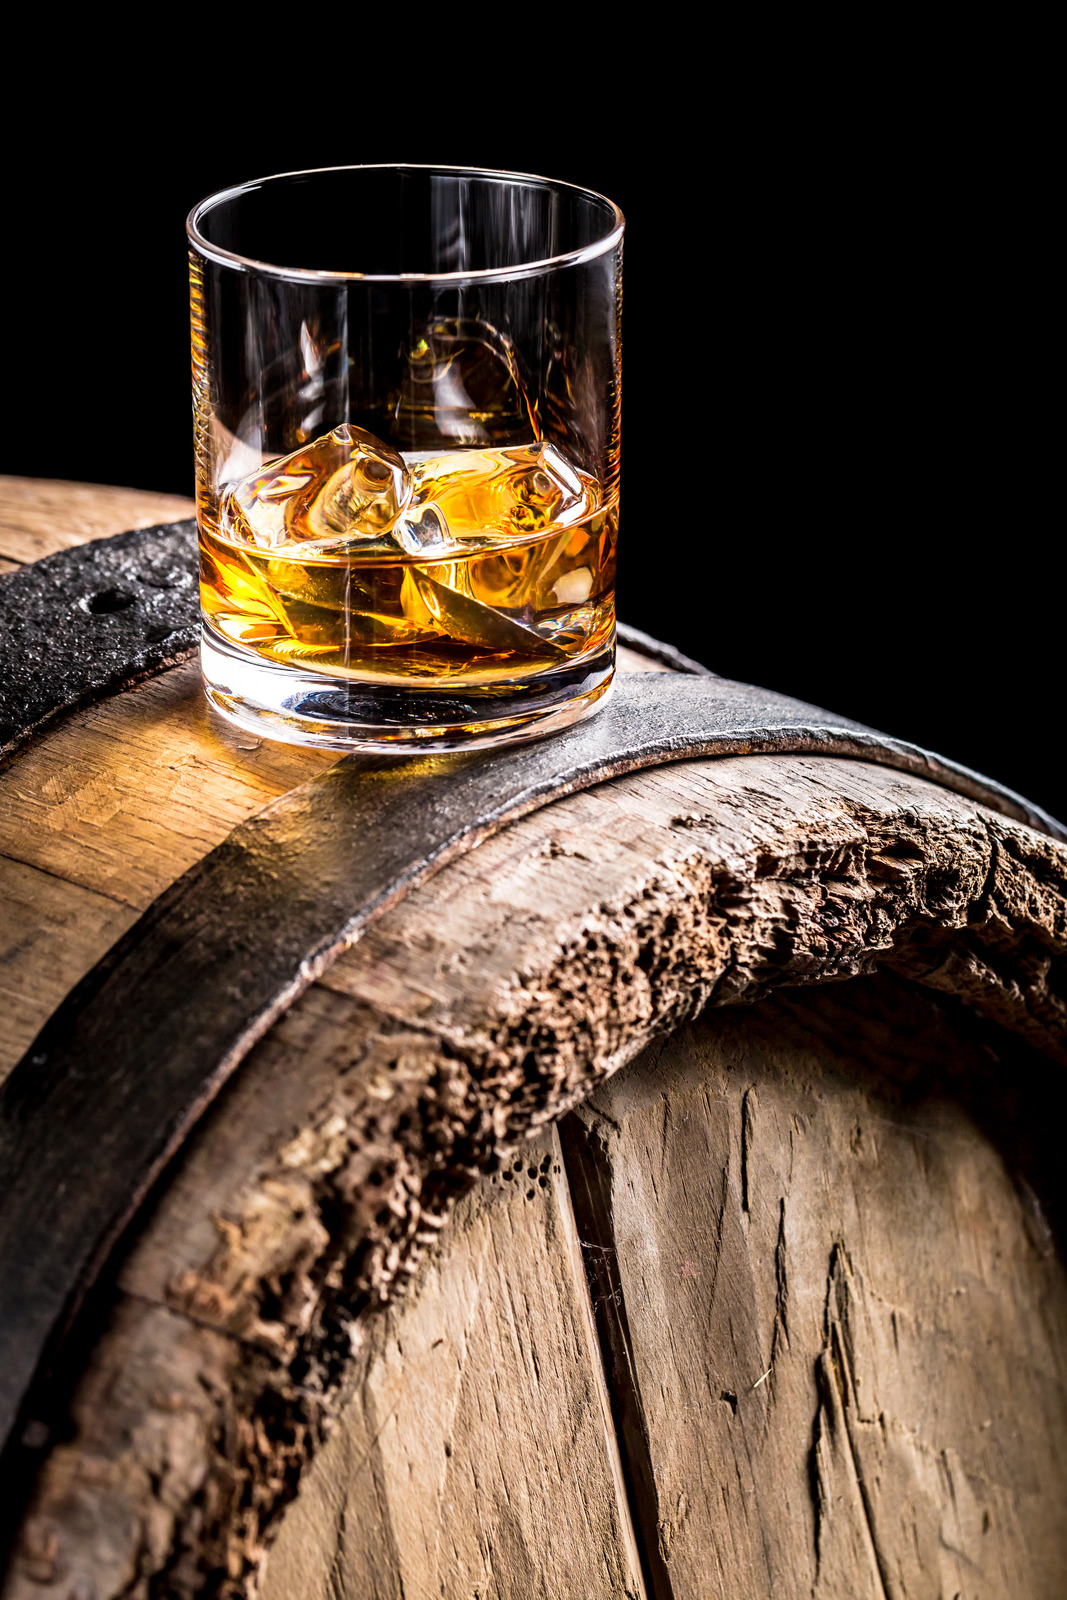 Whiskey glass and old wooden barrel.